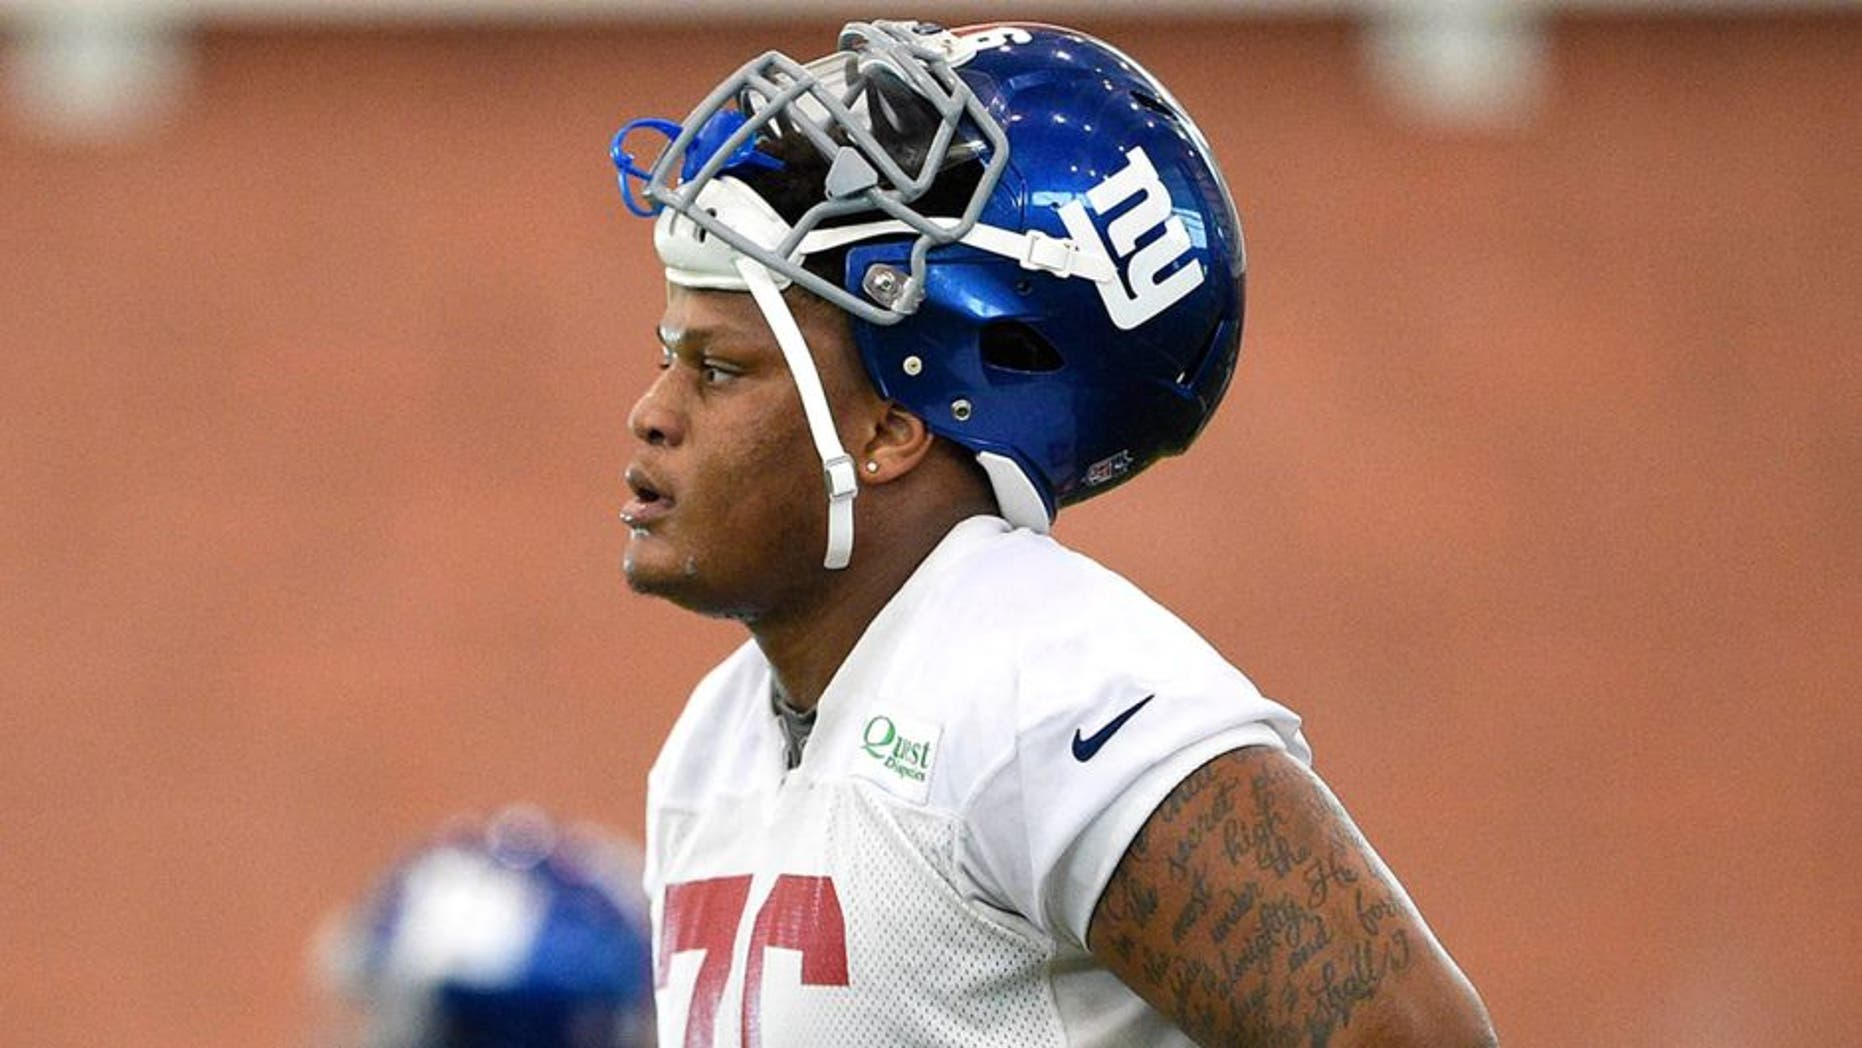 Jun 16, 2015; East Rutherford, NJ, USA; New York Giants tackle Ereck Flowers (76) takes part in practice during minicamp at Quest Diagnostics Training Center. Mandatory Credit: Steven Ryan-USA TODAY Sports